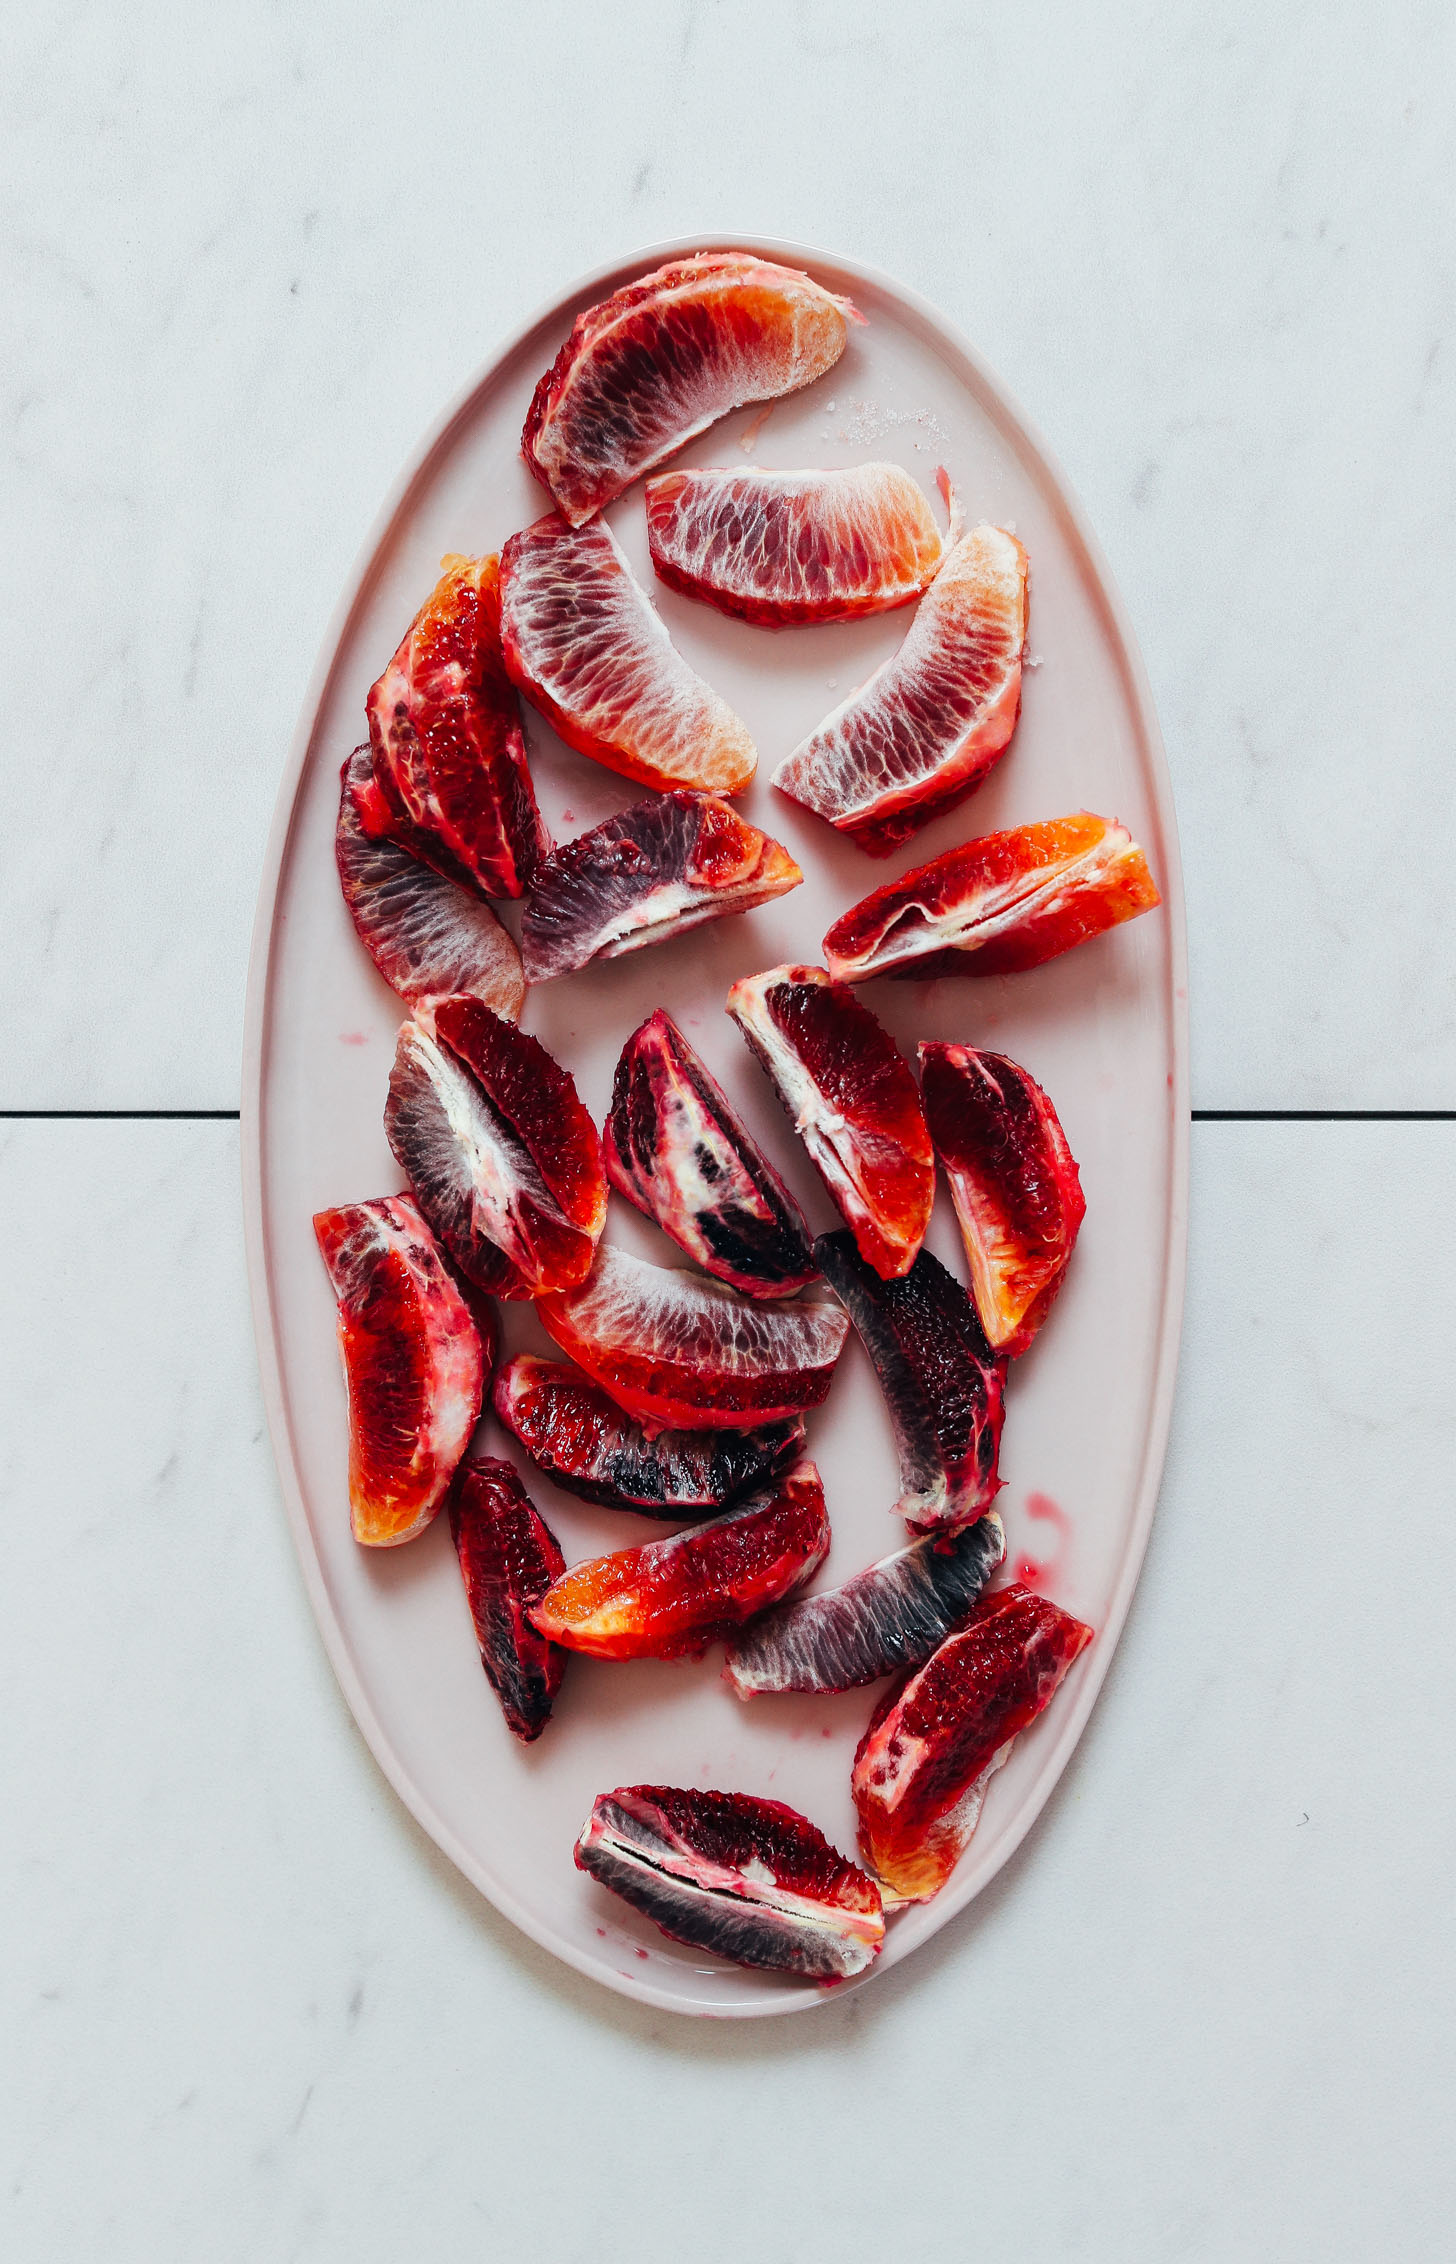 Platter of blood orange segments for freezing and making our Blood Orange Creamsicle Smoothie recipe